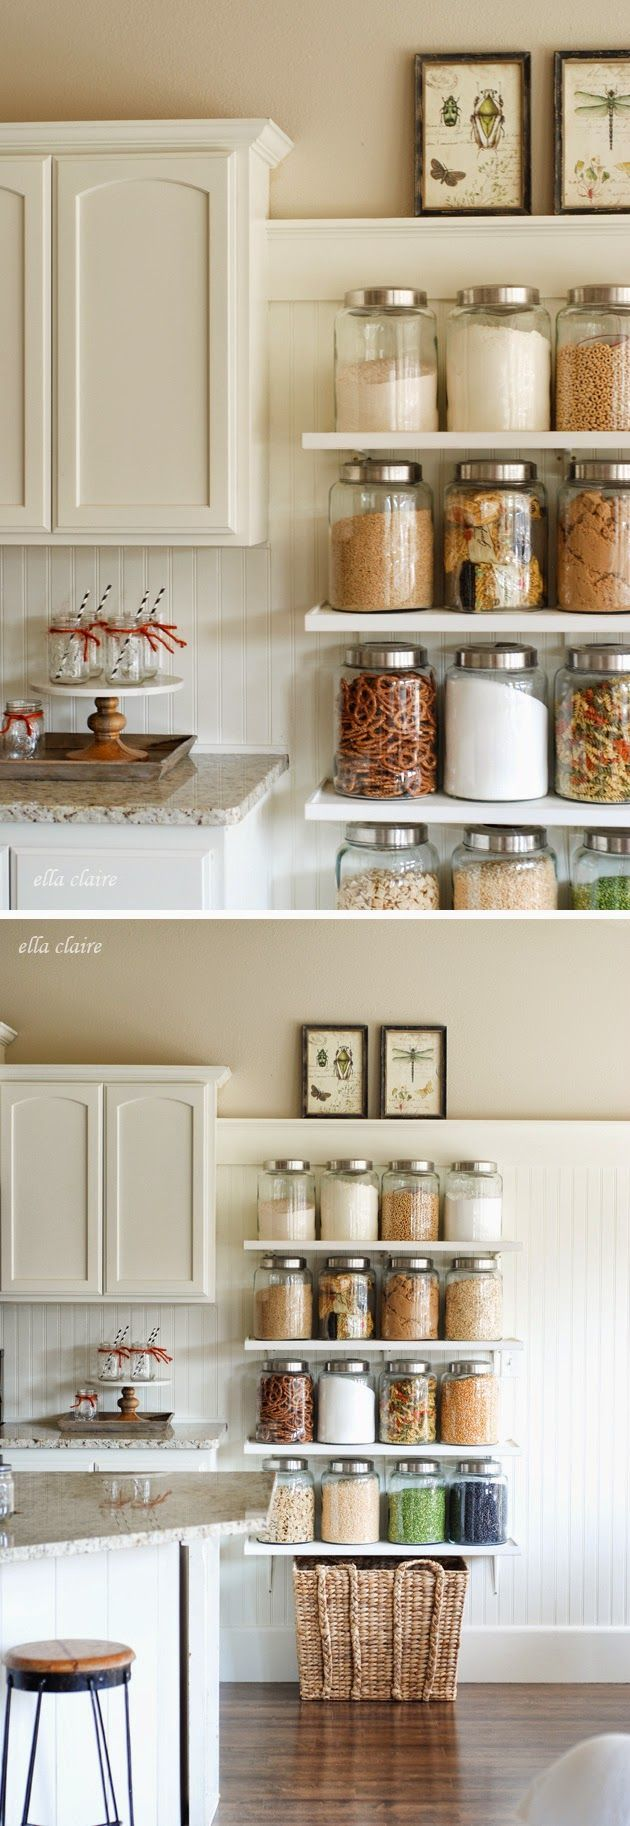 25 best glass canisters ideas on pinterest bulk food storage country store kitchen shelves creating pantry space in the kitchen by adding shelves and glass